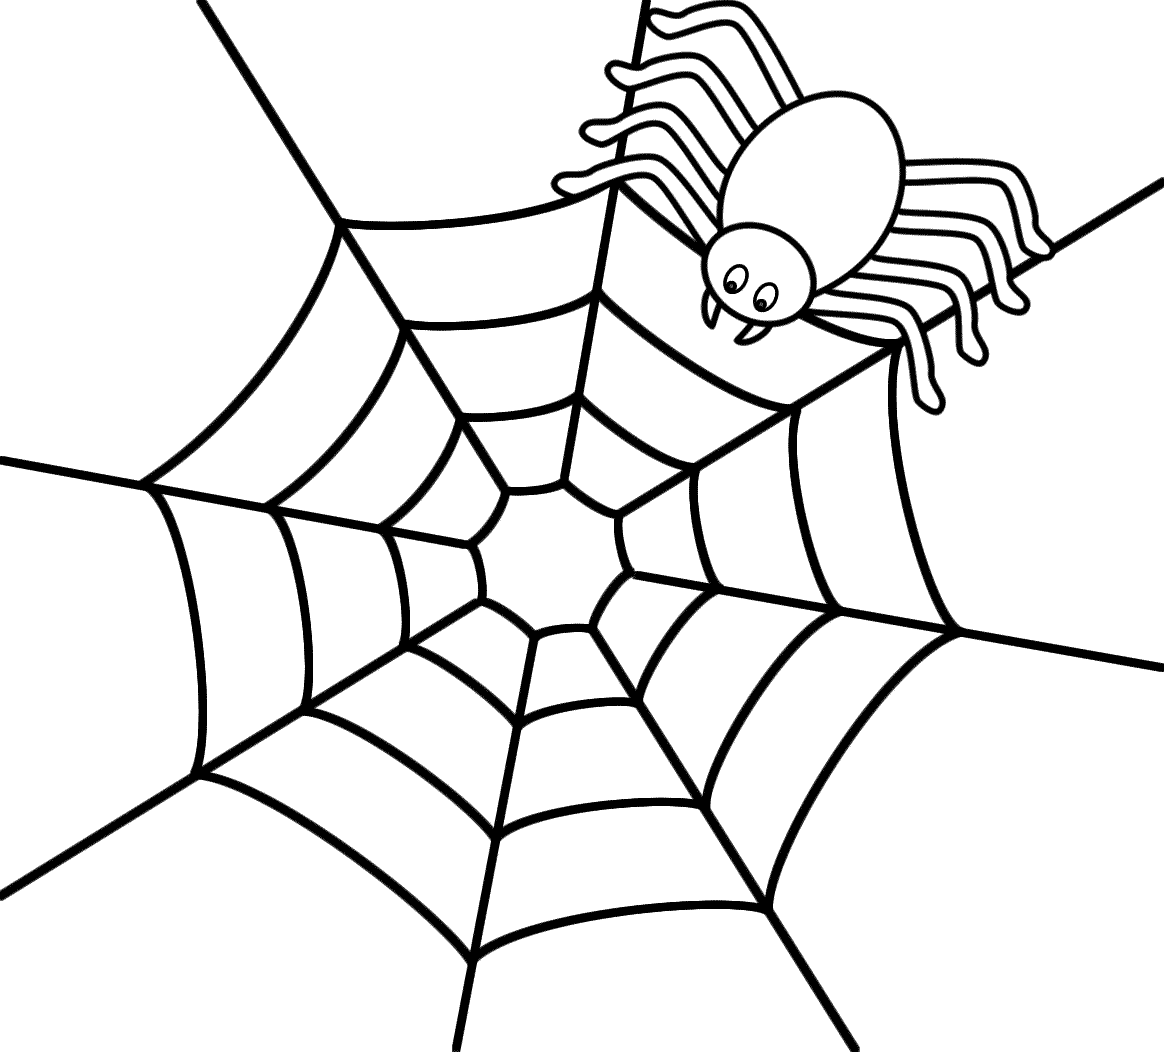 Coloring Page Of A Spider - Coloring Home